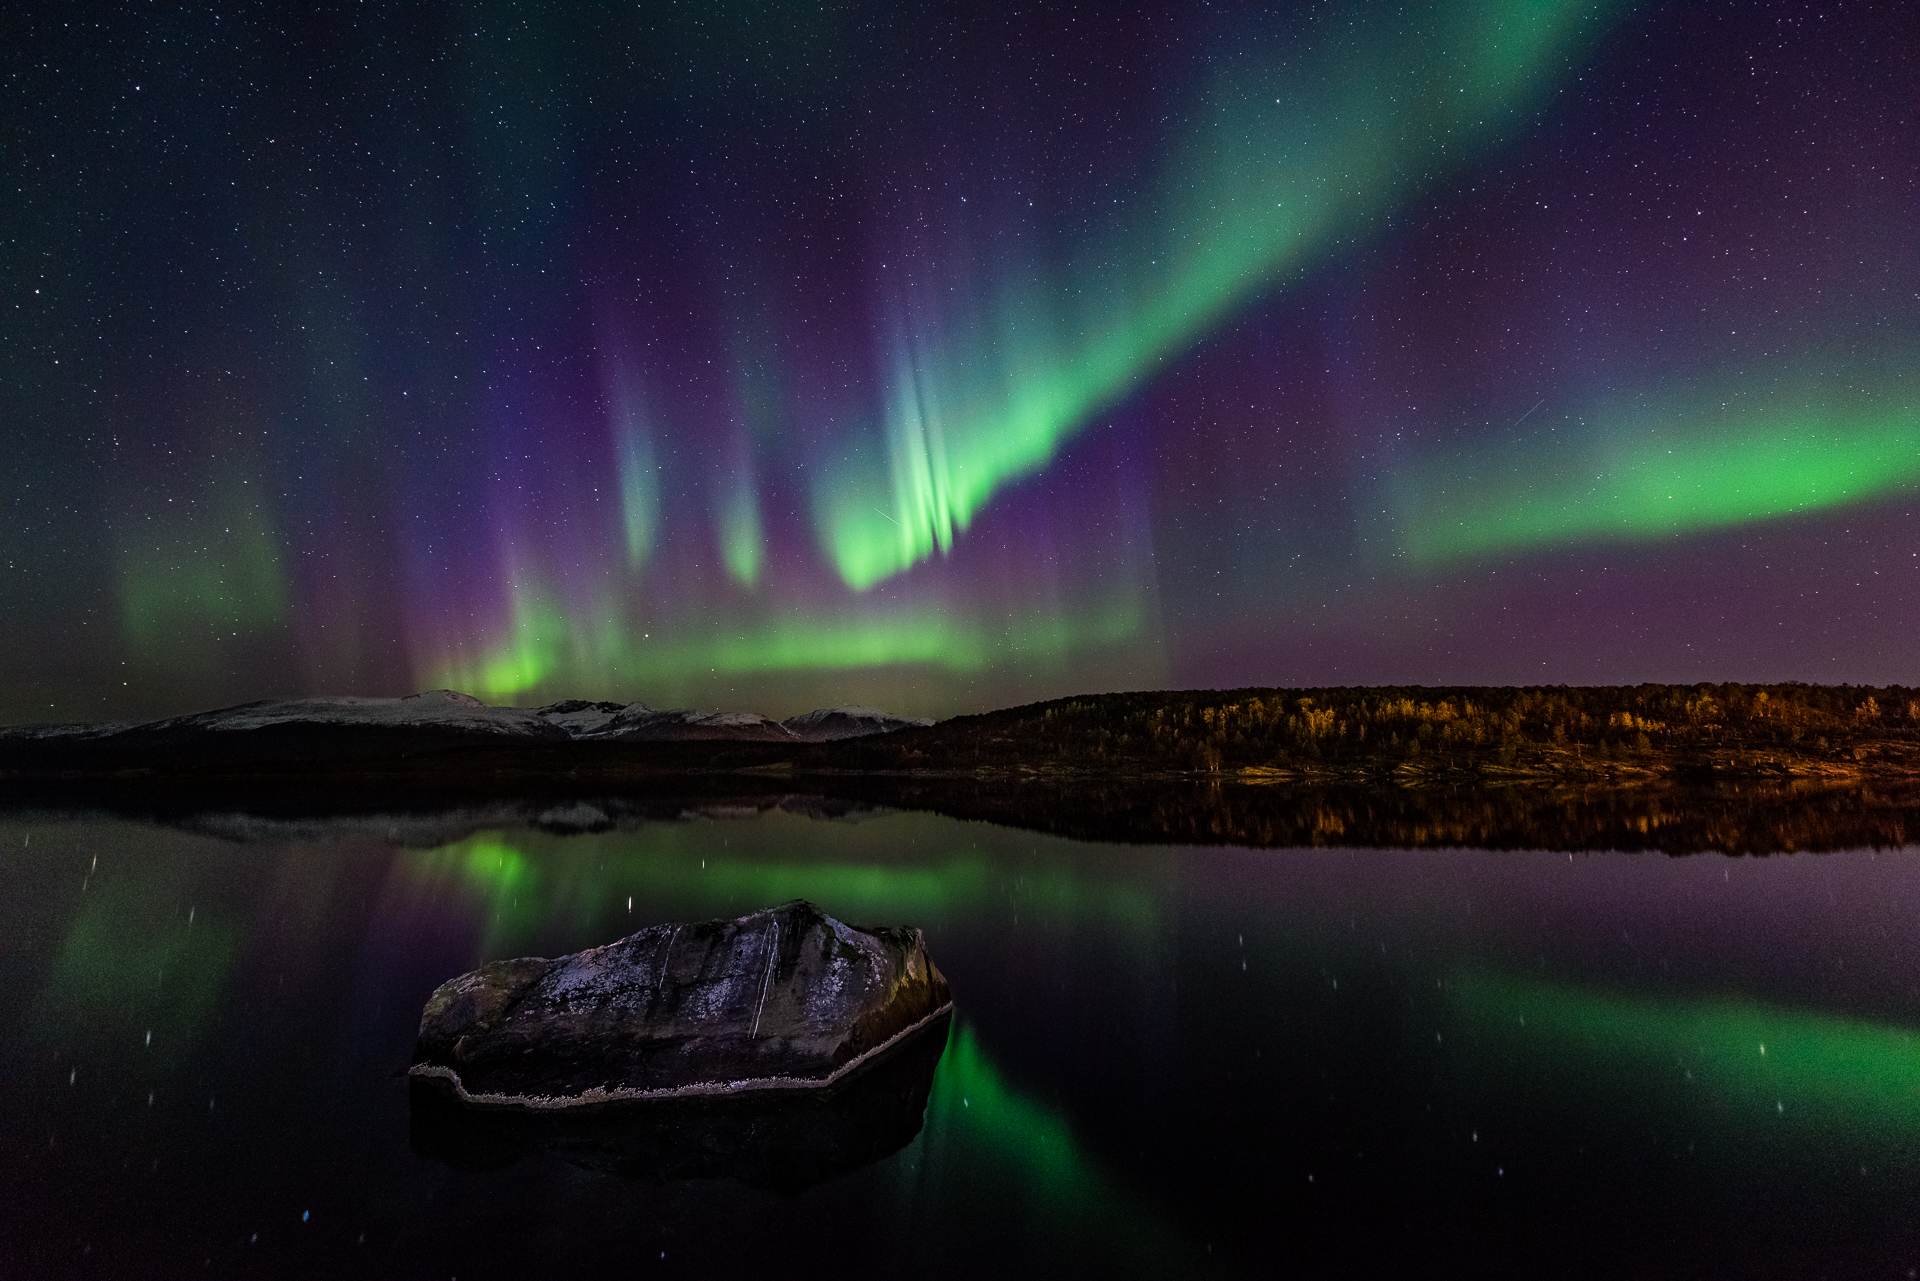 Polo Wallpaper For Iphone Aurora Borealis Full Hd Wallpaper And Background